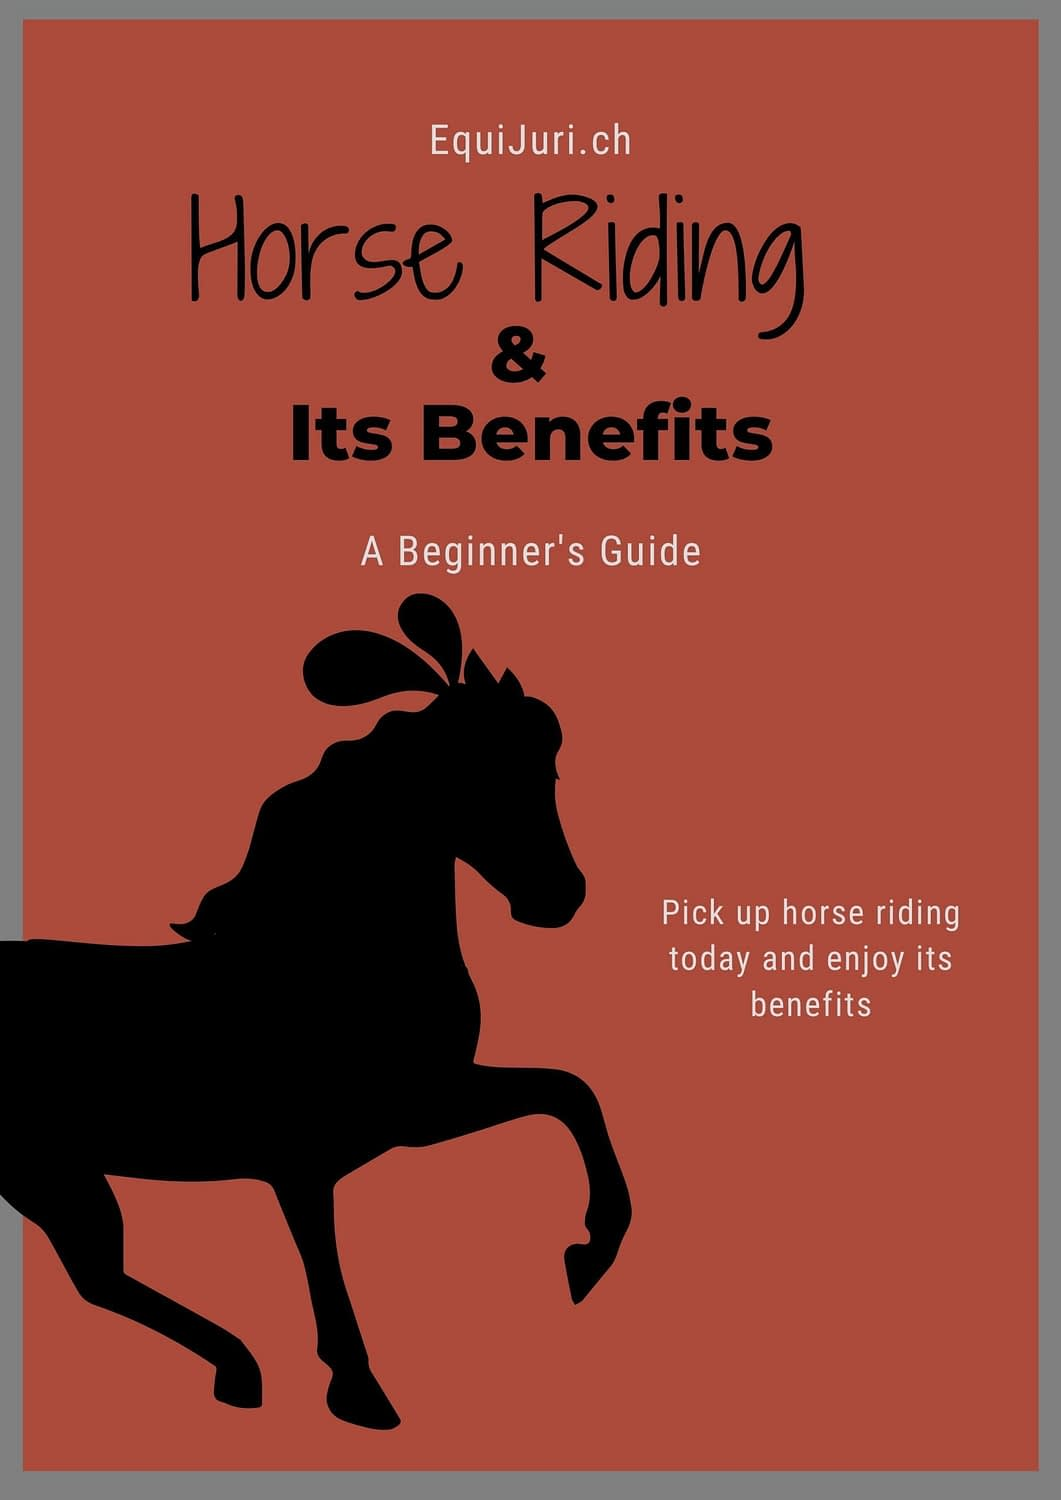 Horse Riding & Its Benefits EquiJuri